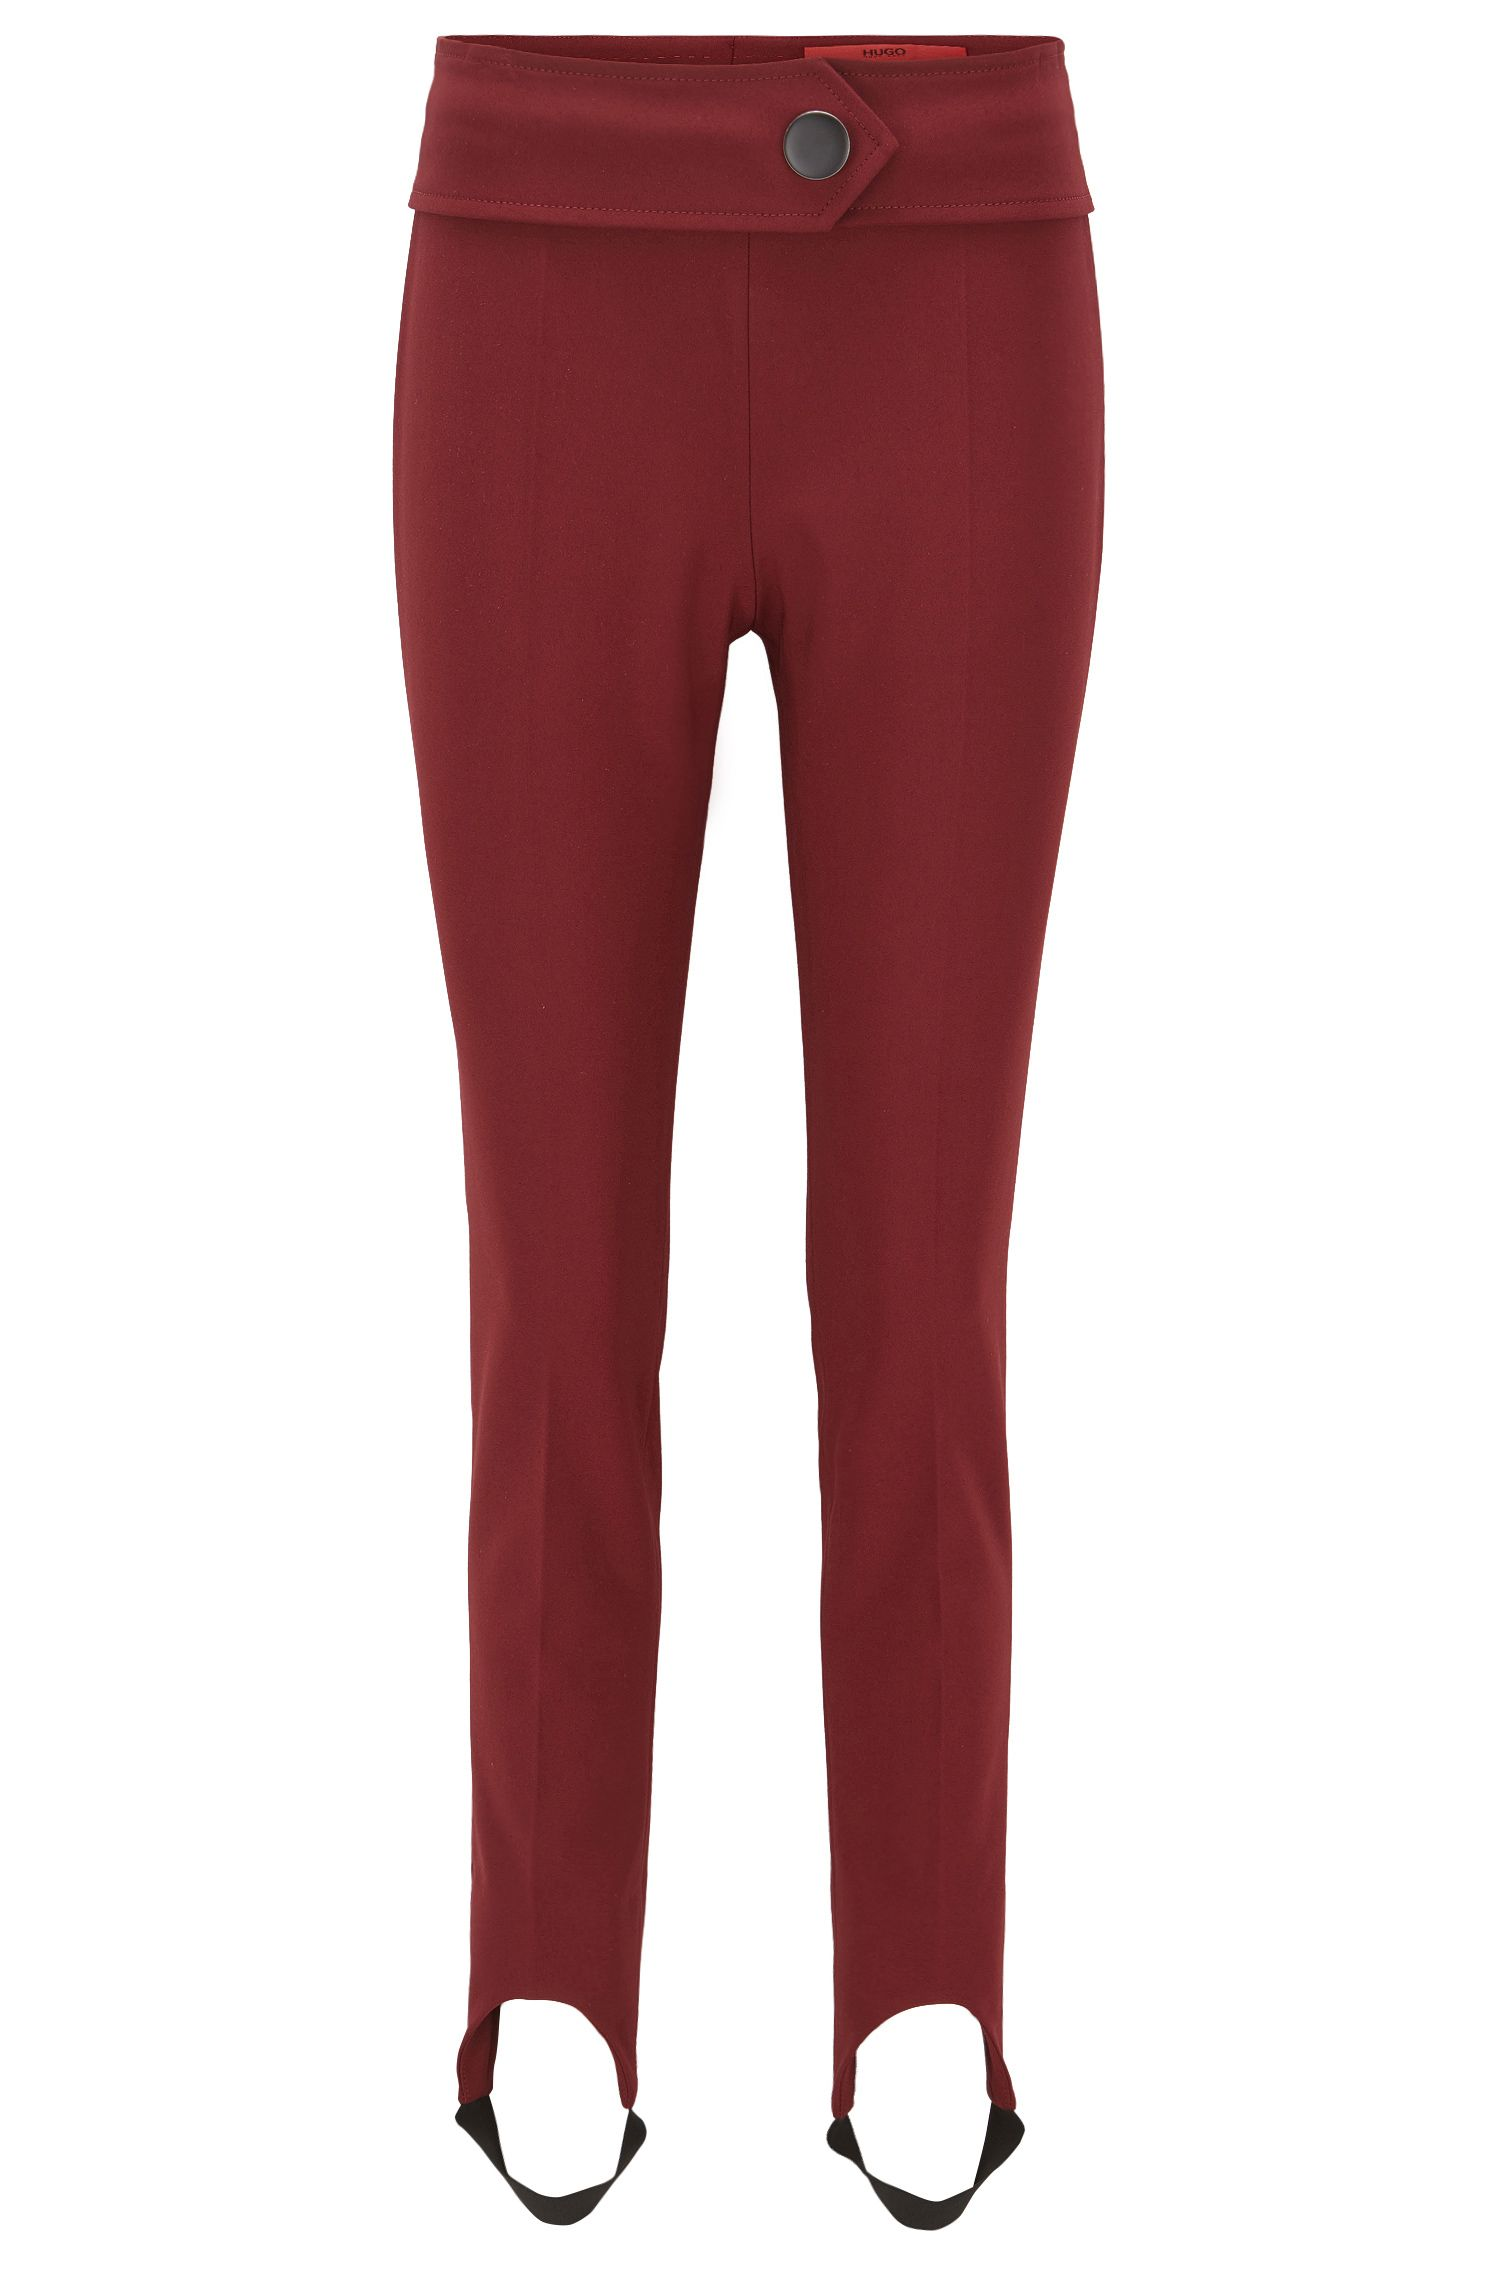 Skinny-fit stirrup trousers in a stretch cotton blend